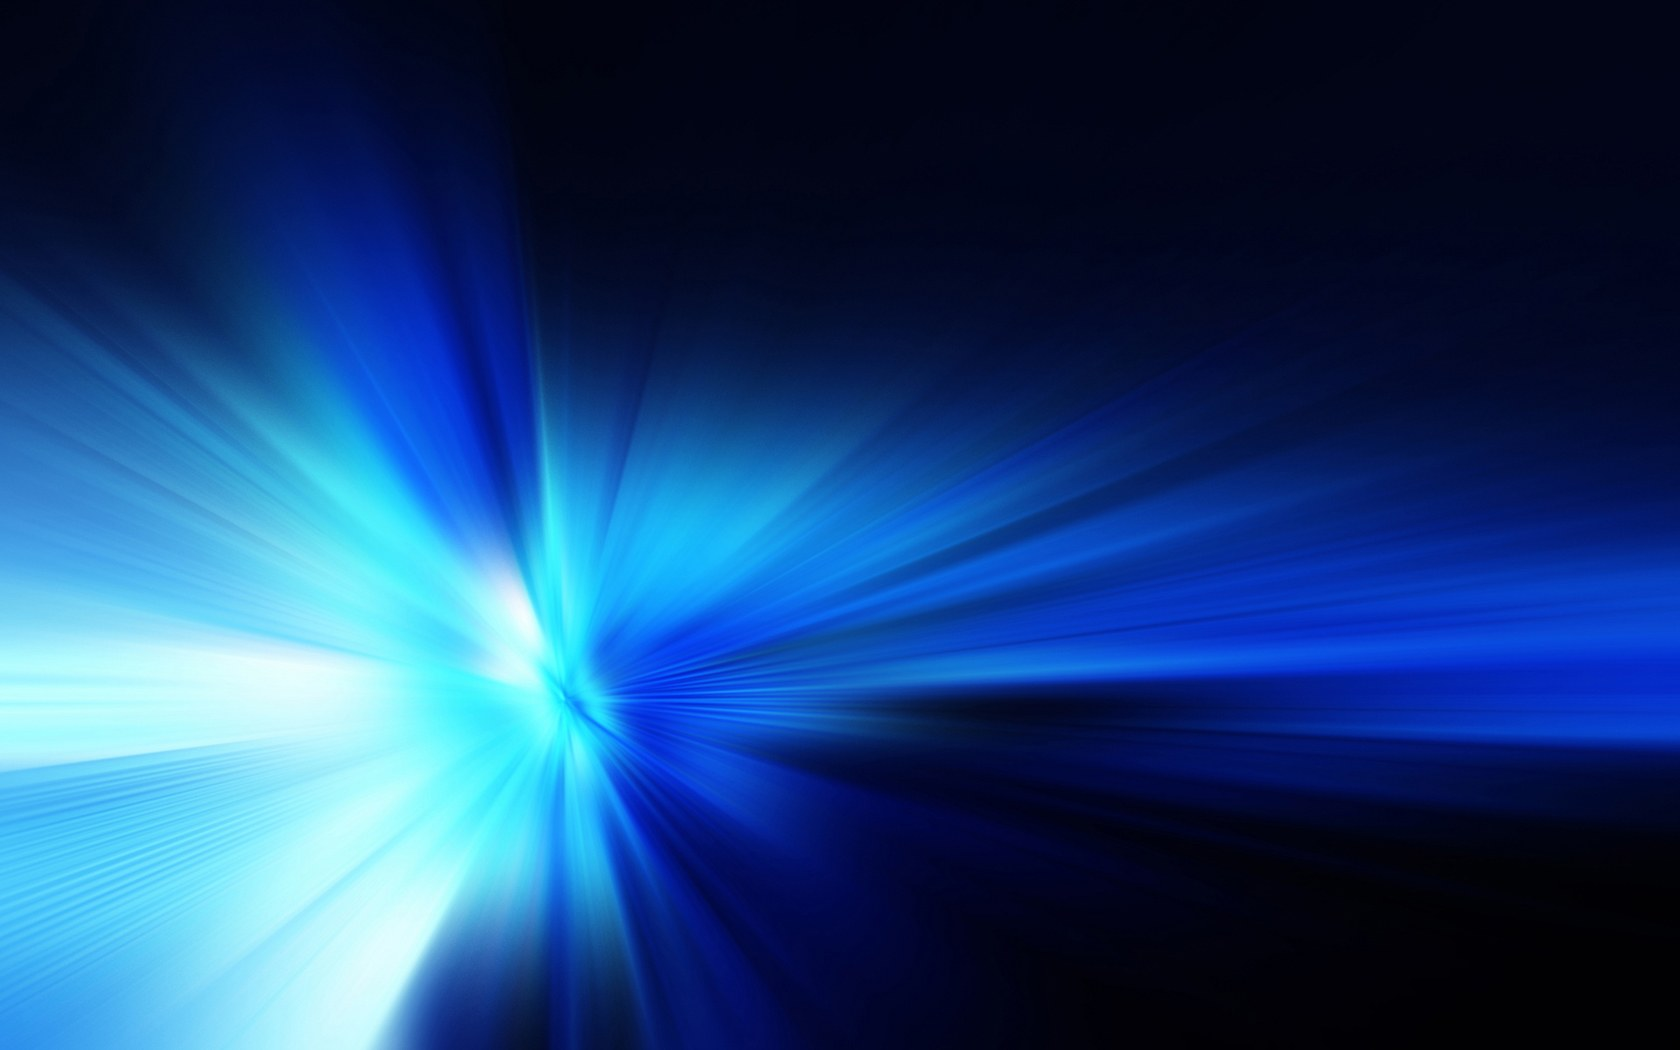 blue abstract light effect - photo #7